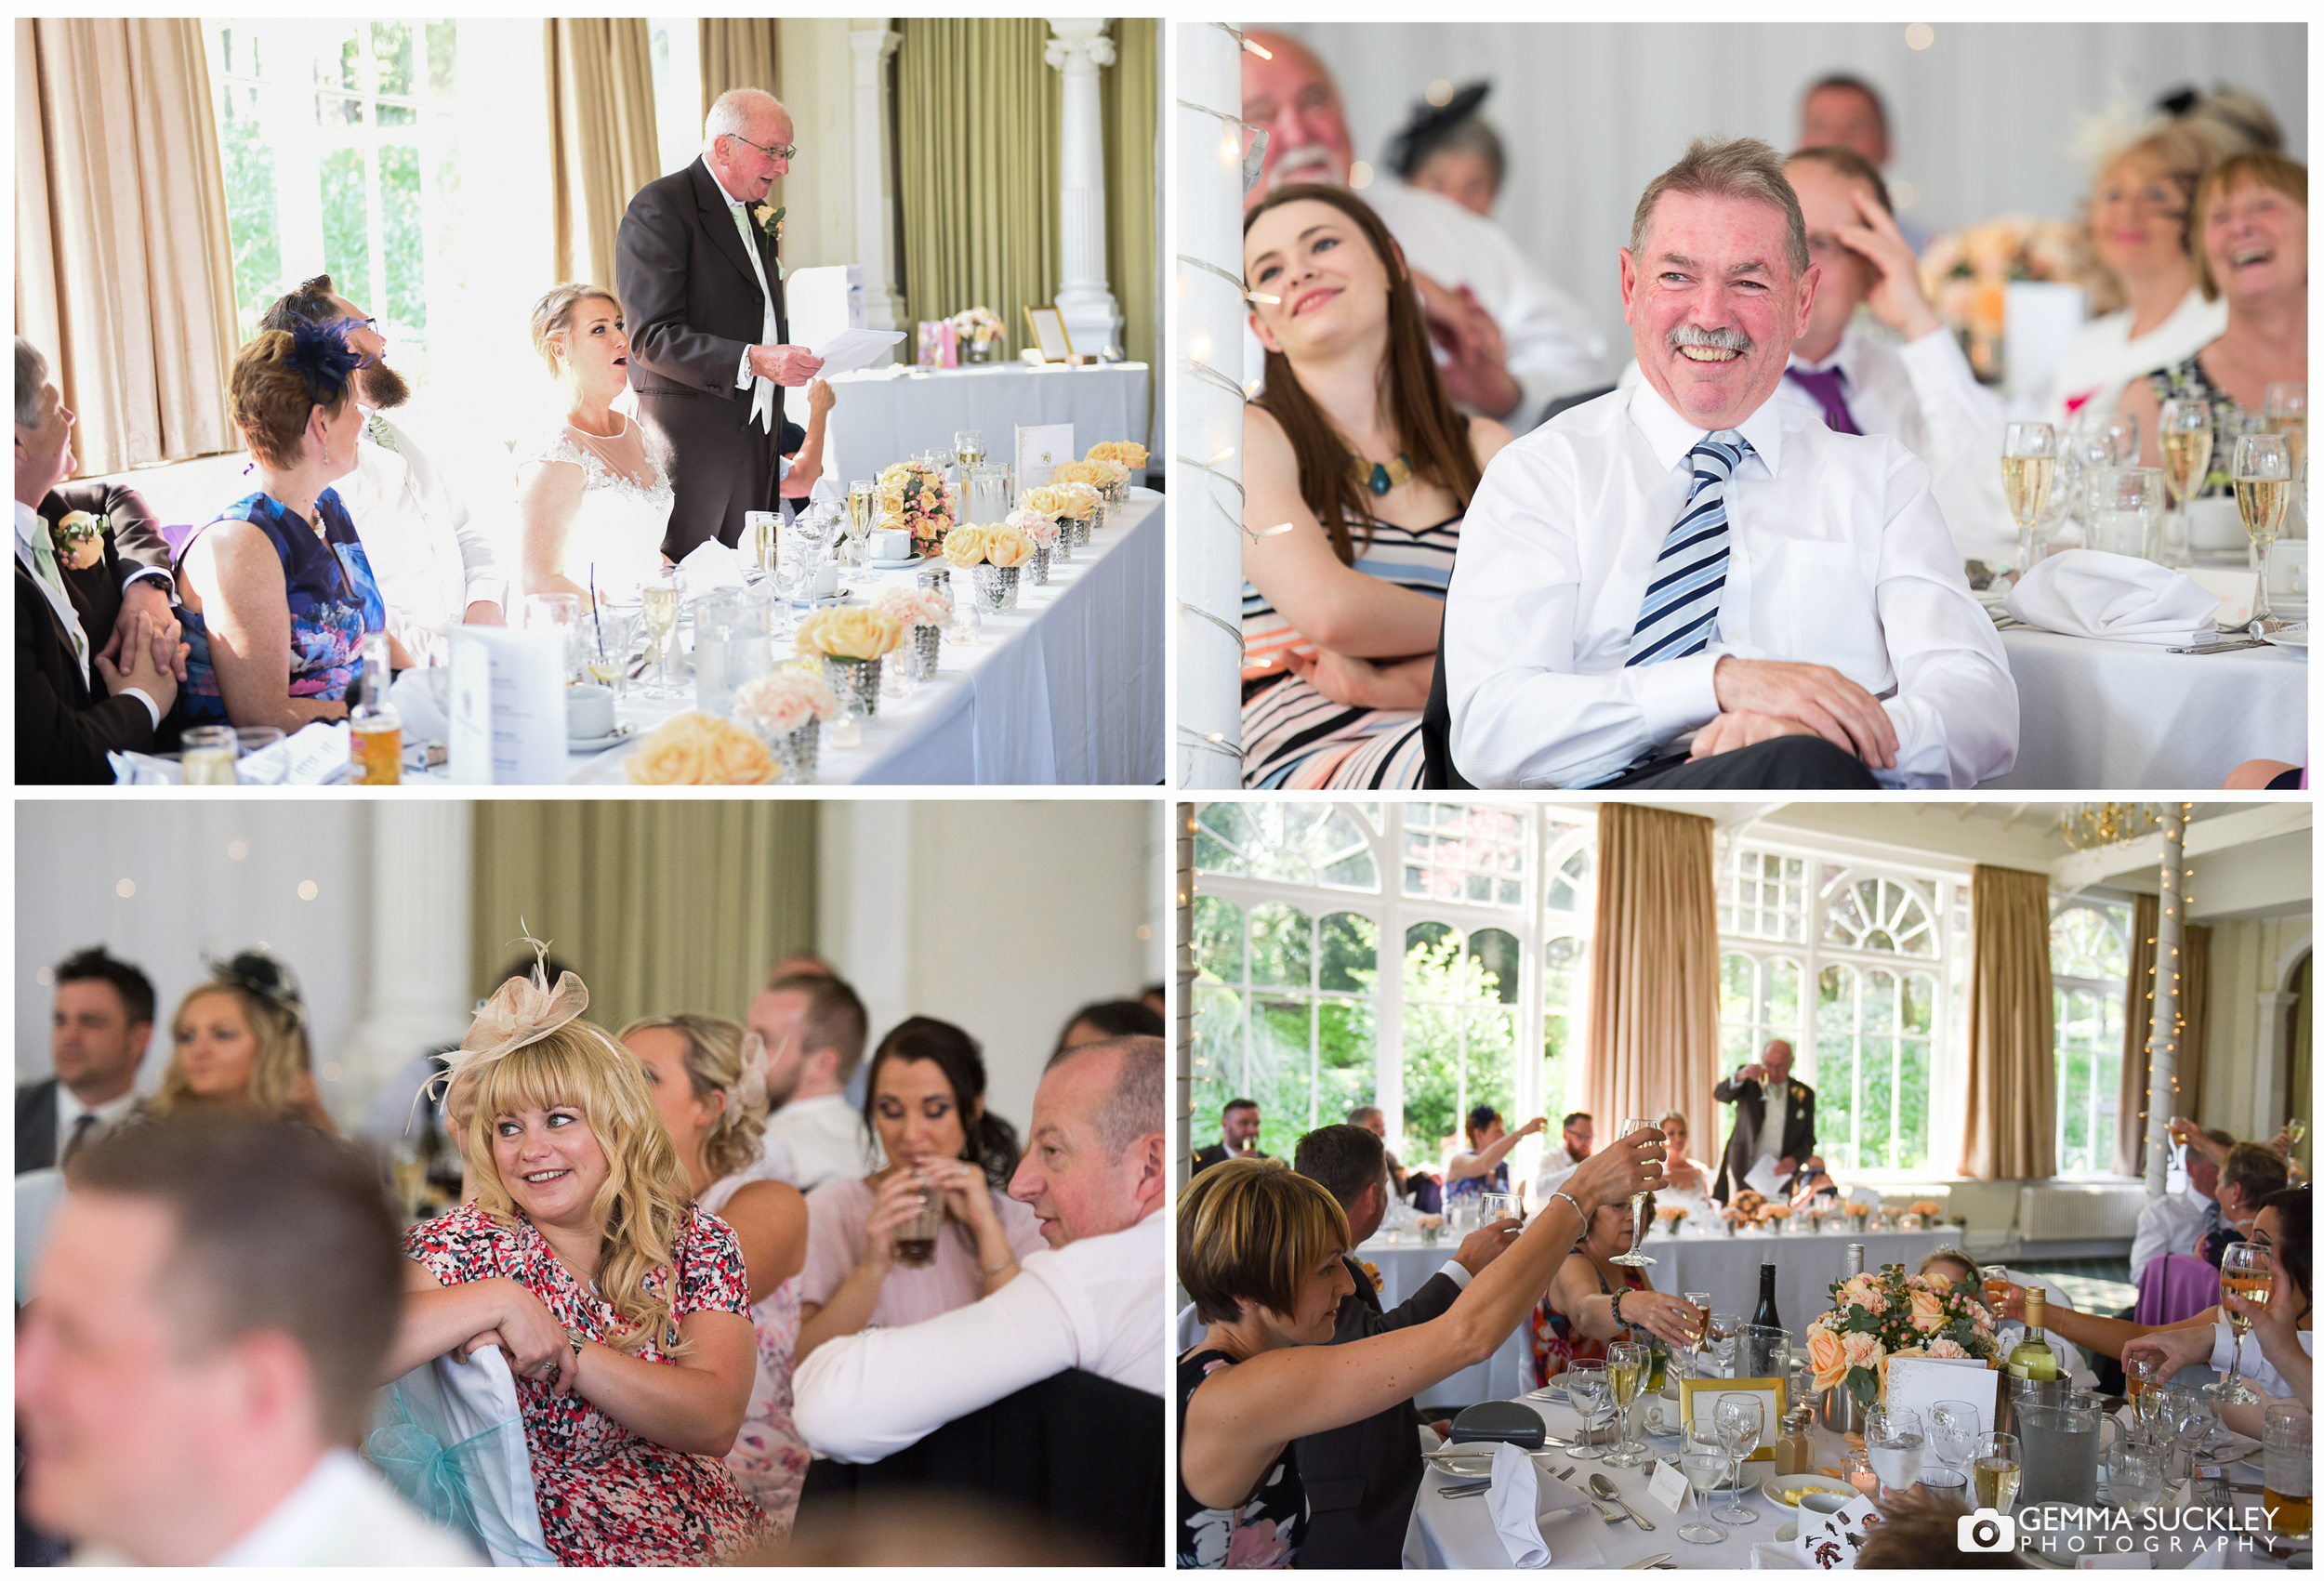 Wedding guests laughing at speeches during the wedding at Old Swan in harrogate